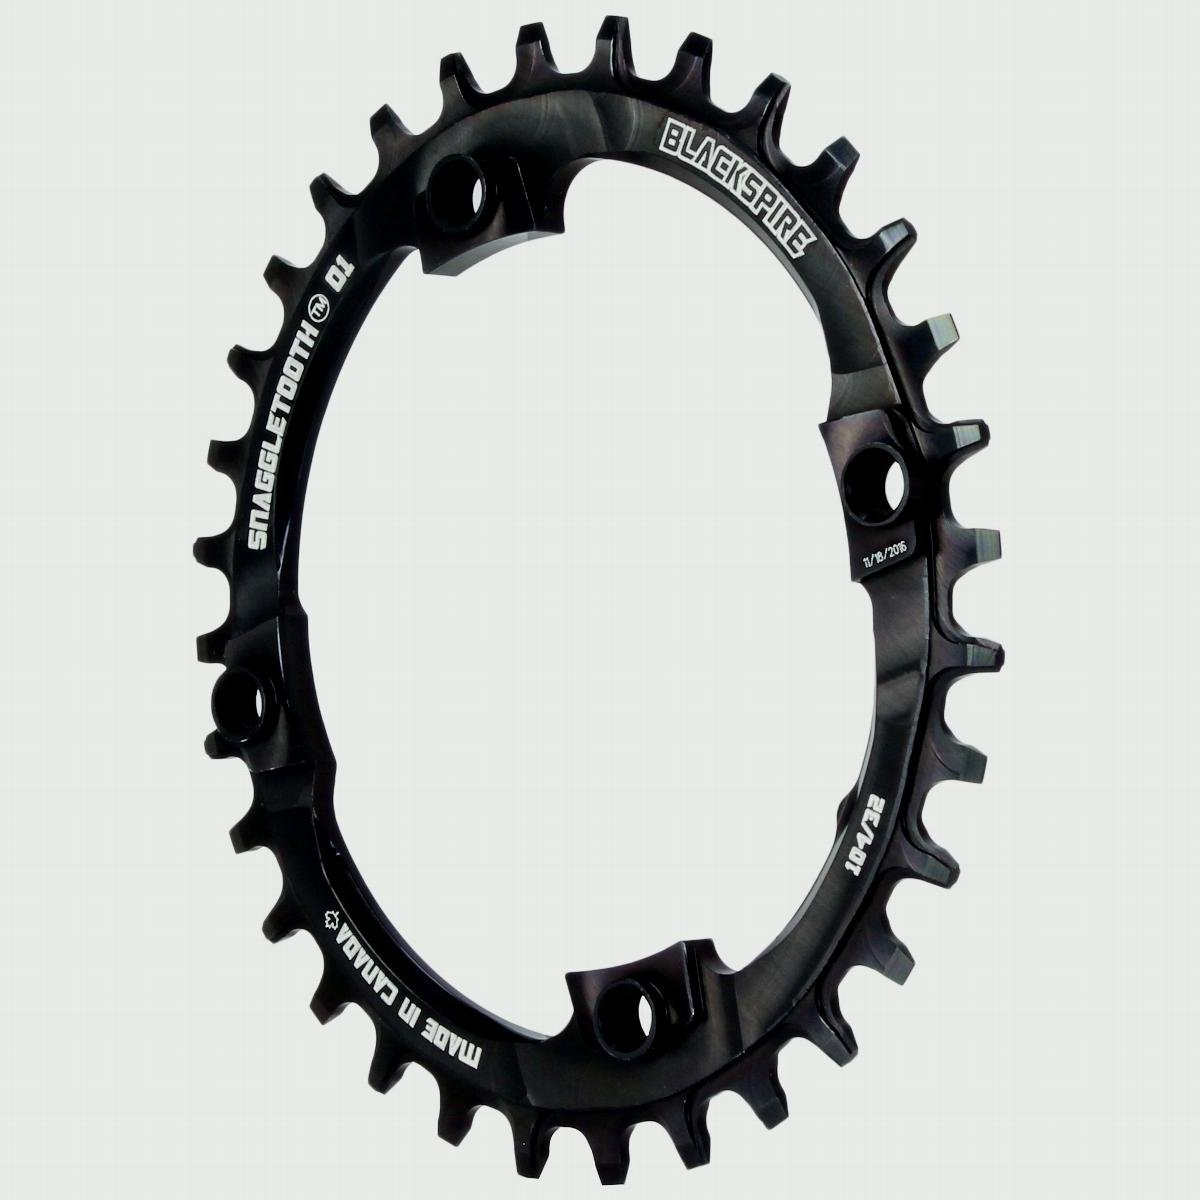 Blackspire Snaggletooth 104BCD Oval chainring 32T - black